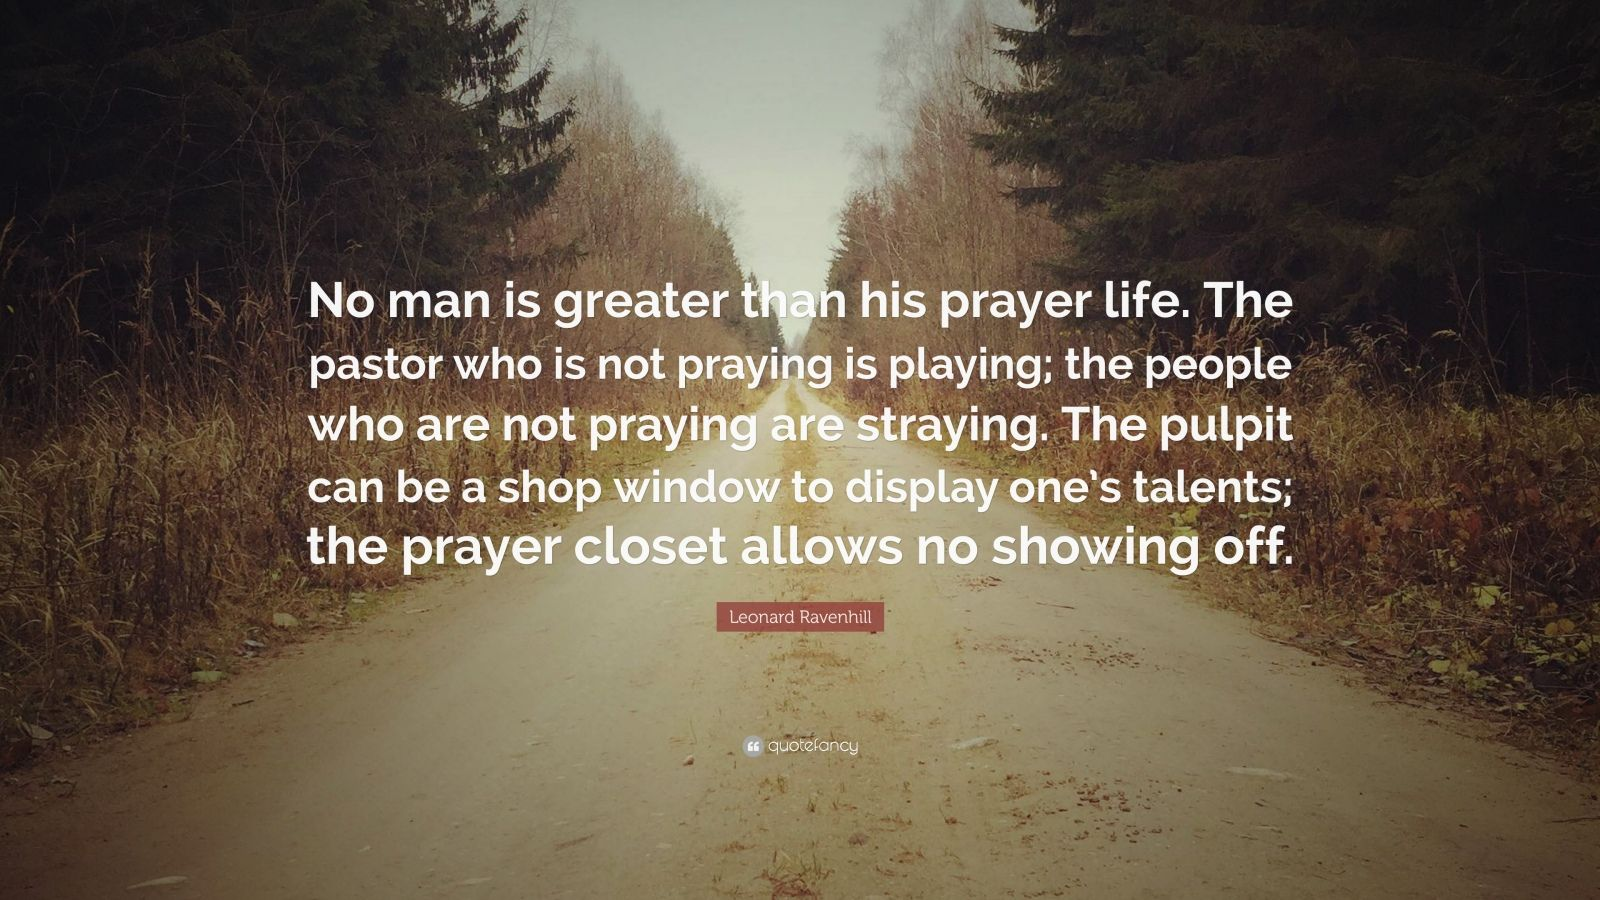 "Leonard Ravenhill Quote: ""No man is greater than his prayer life. The pastor who is not praying is playing; the people who are not praying are straying. The pulpit can be a shop window to display one's talents; the prayer closet allows no showing off."""